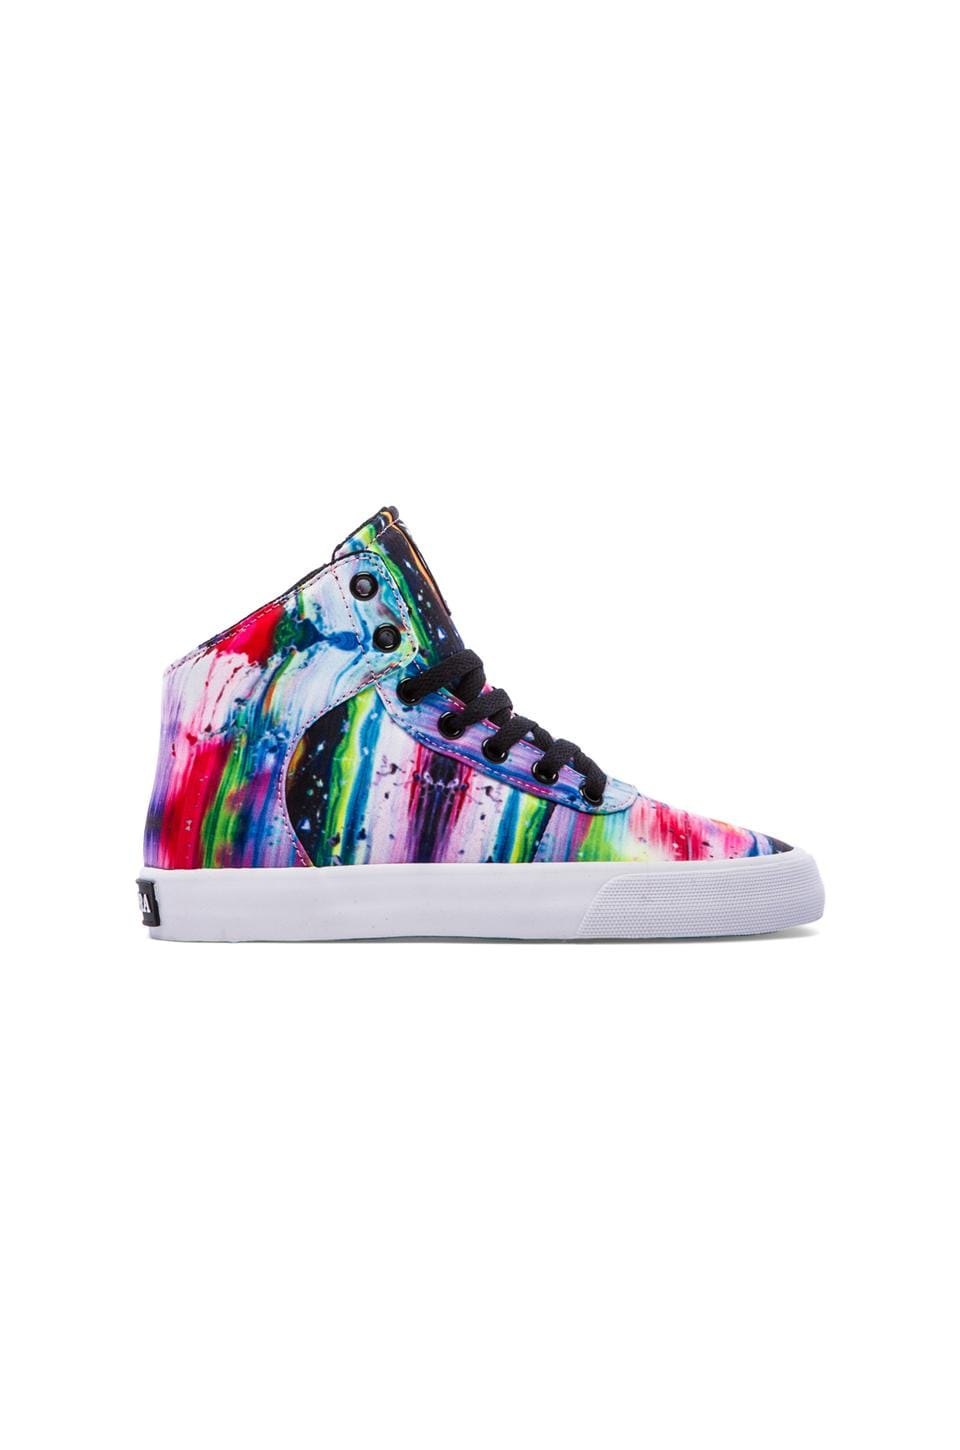 Supra Cuttler Sneaker in Melted Rainbow